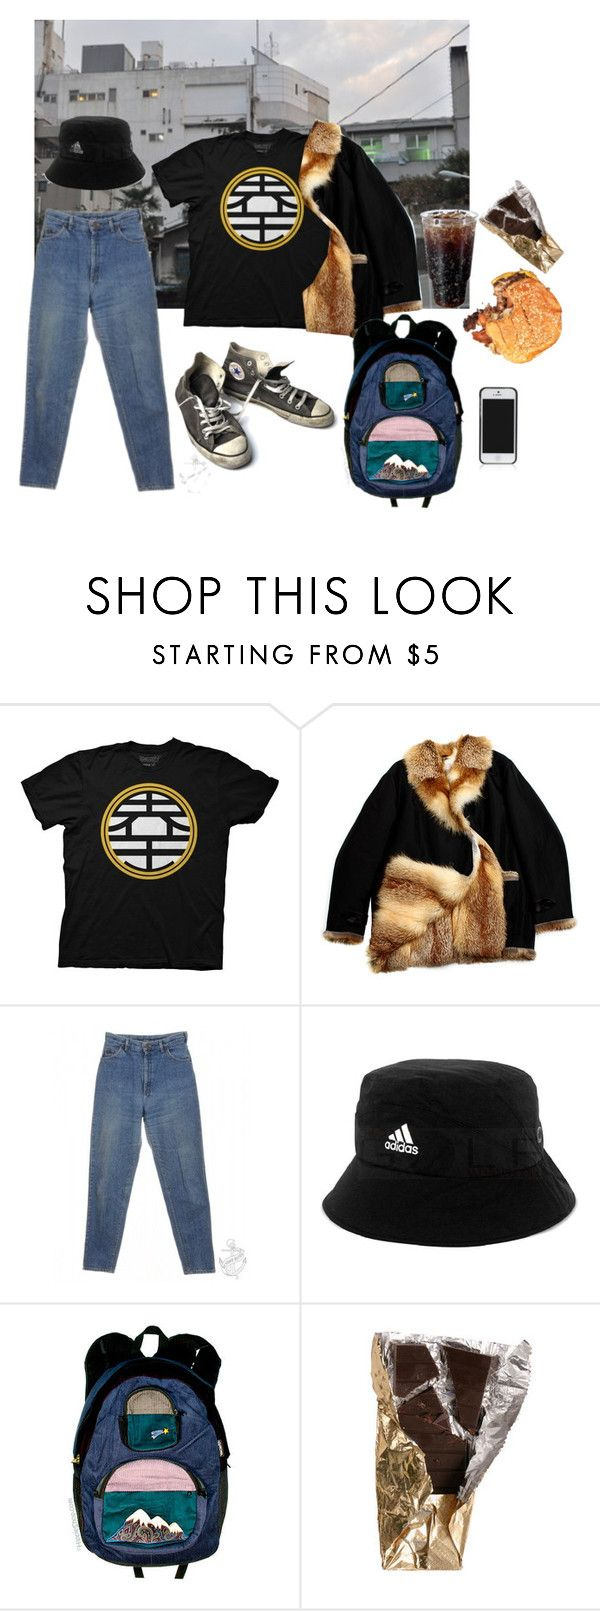 """""""piano / tag"""" by pallo ❤ liked on Polyvore featuring Converse, Ripple Junction, Bos Bison, Lee, adidas and Tory Burch"""